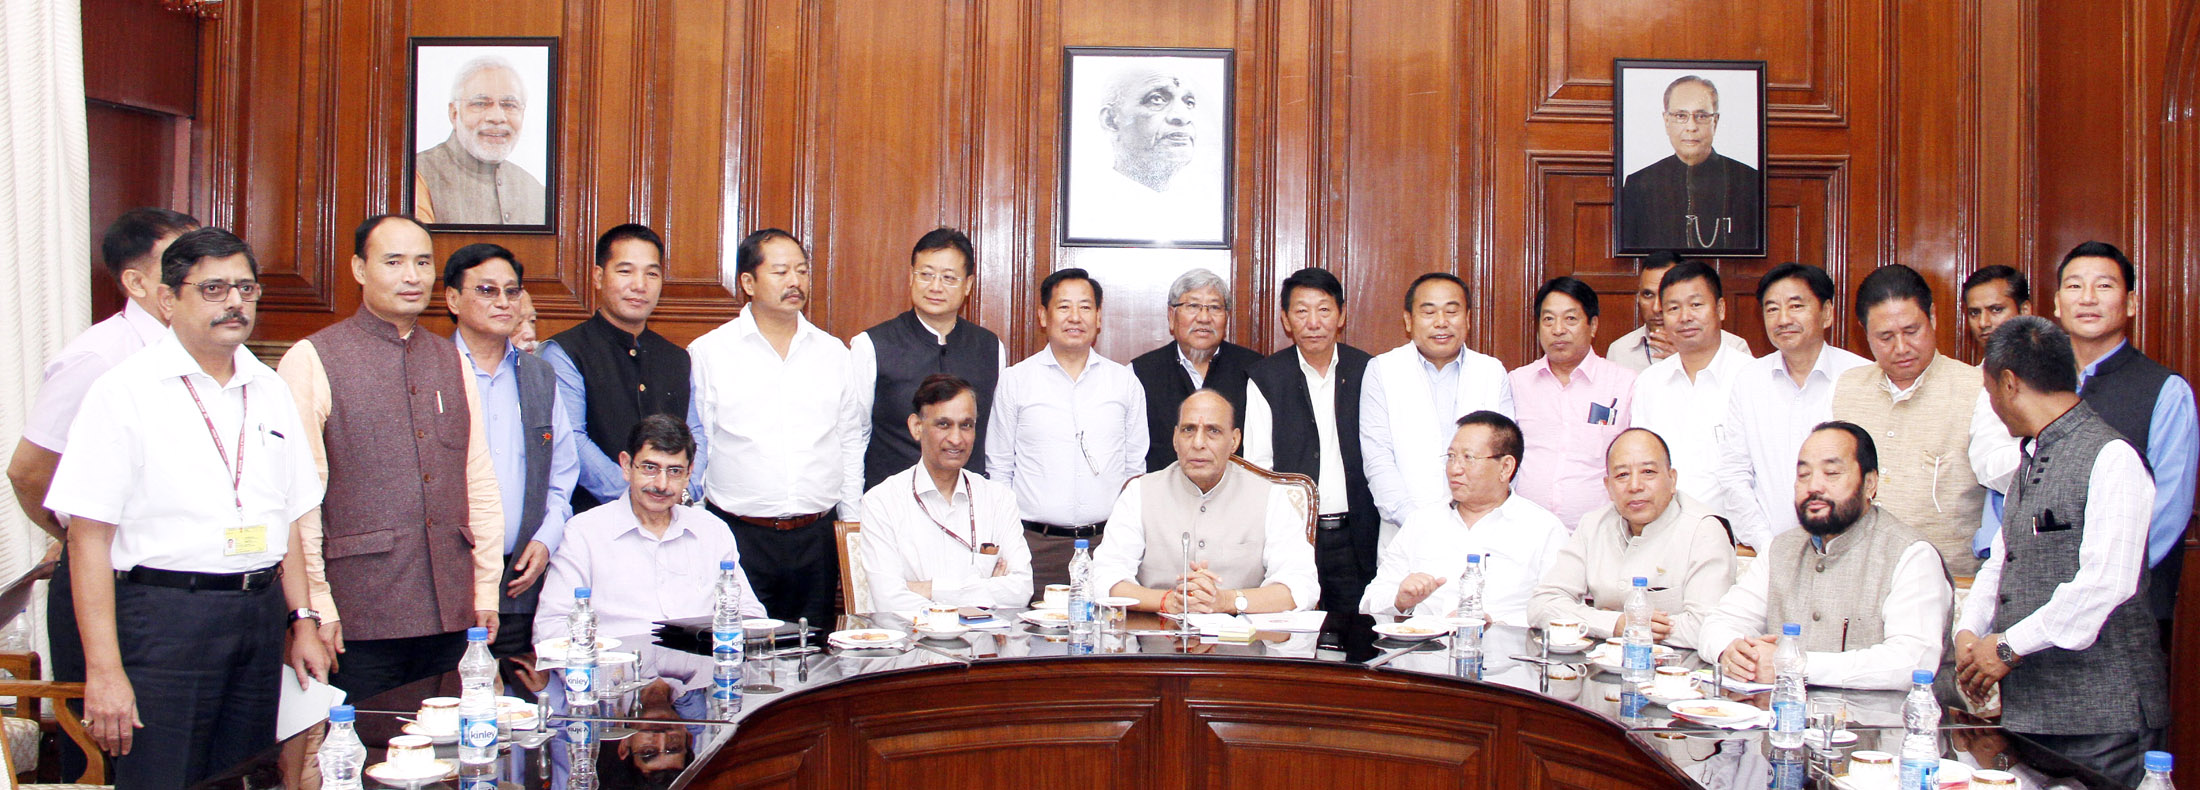 A delegation of Ministers and MLAs from Nagaland led by the Speaker of Nagaland Legislative Assembly, Shri Chotisuh Sazo and the Chief Minister, Nagaland, Shri T.R. Zeliang, calling on the Union Home Minister, Shri Rajnath Singh, in New Delhi on July 17, 2015.   The Union Home Secretary, Shri L.C. Goyal, the Interlocutor for Naga peace talks and Chairman, Joint Intelligence Committee, Shri R.N. Ravi and the Joint Secretary (NE), MHA, Shri Shambhu Singh are also seen.